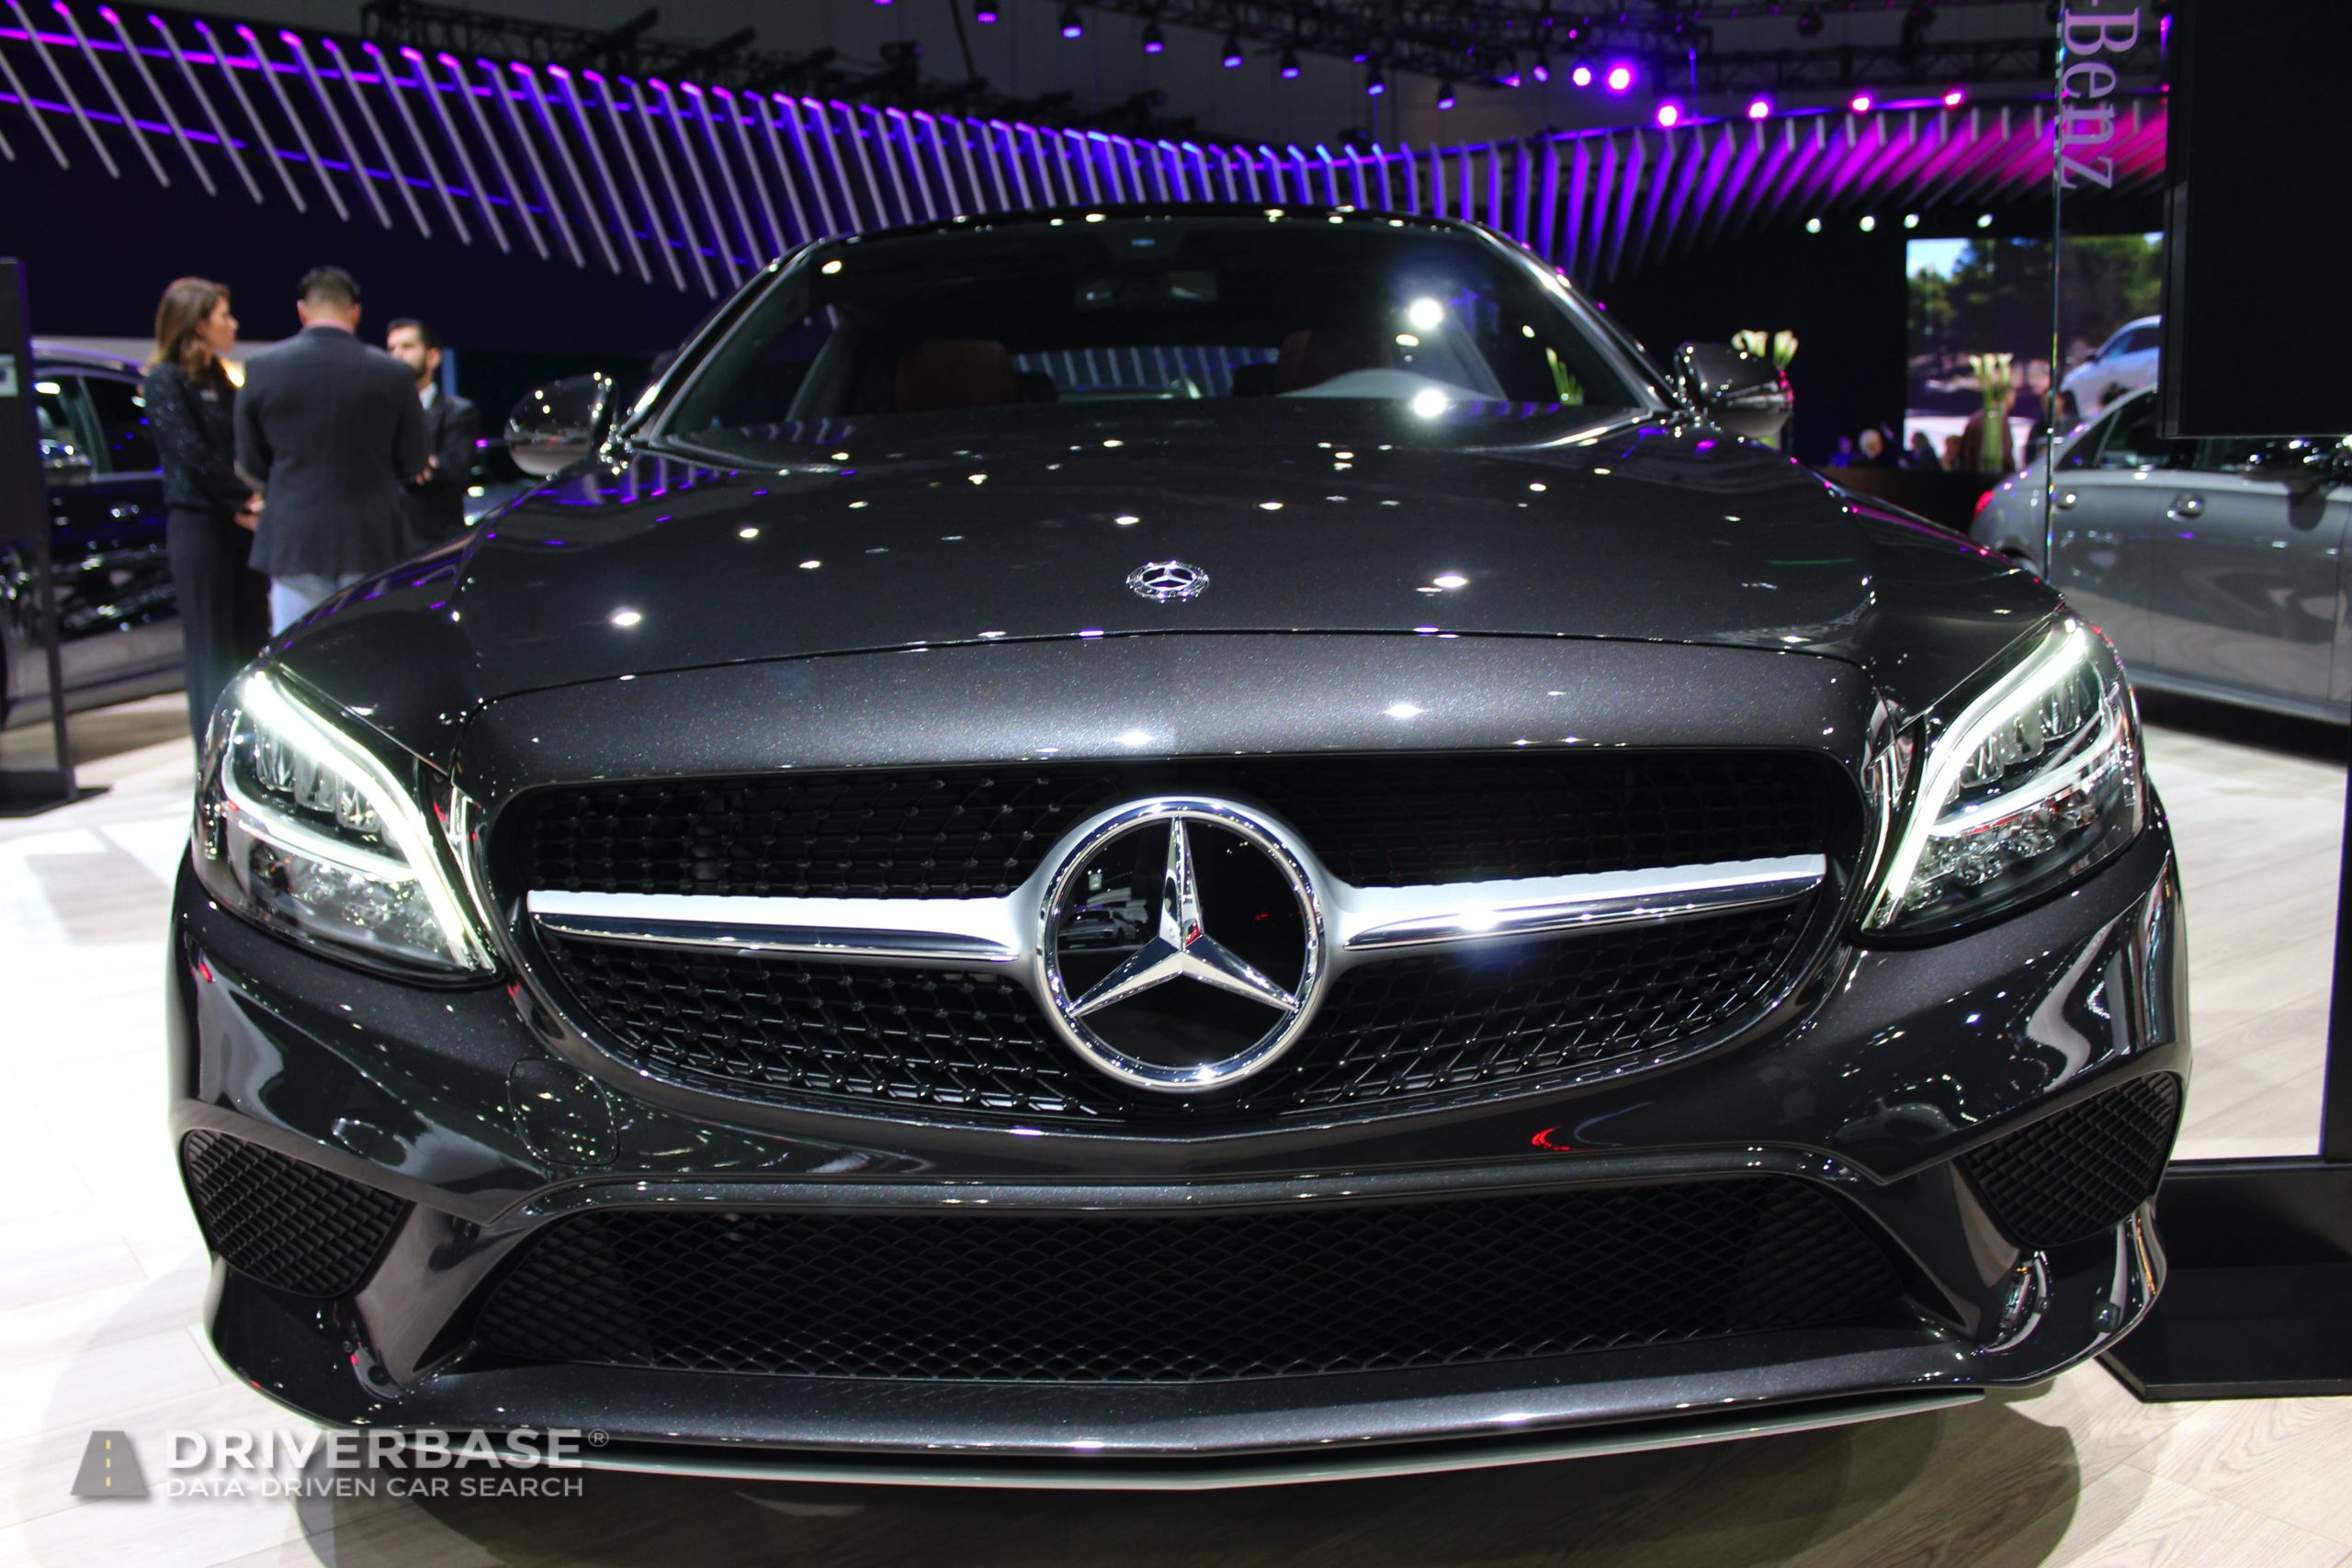 2020 Mercedes-Benz C 300 at the 2019 Los Angeles Auto Show